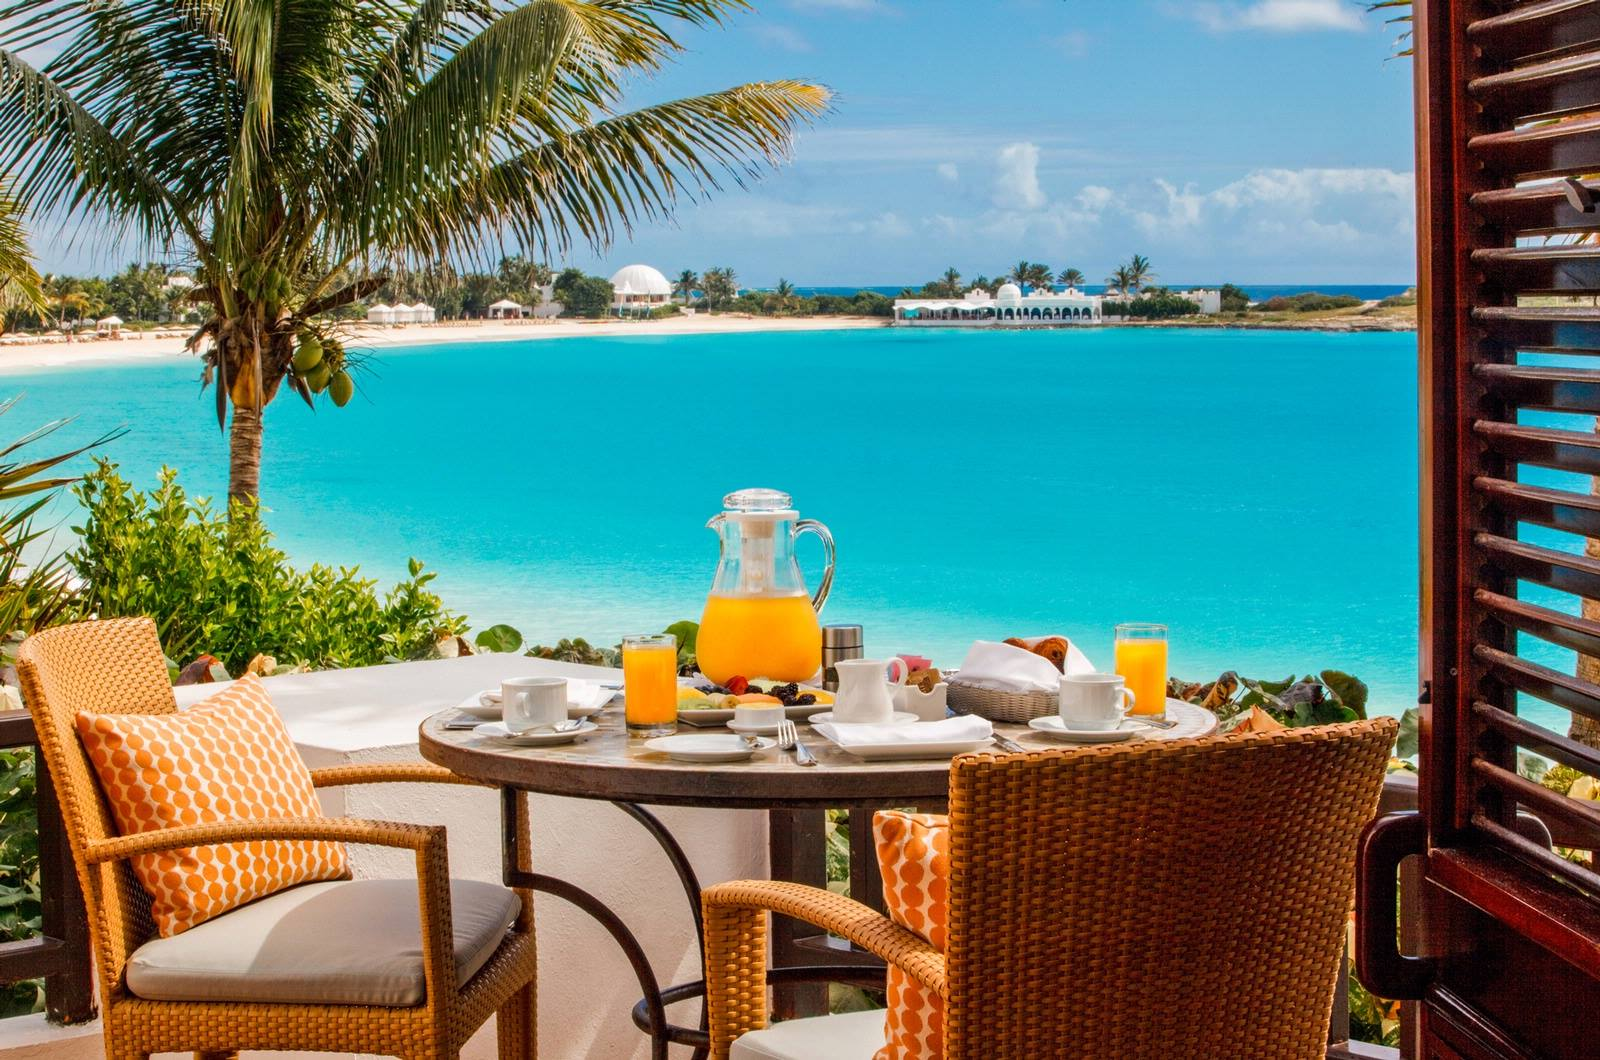 Our Top Choices For Breakfast In Playa On The